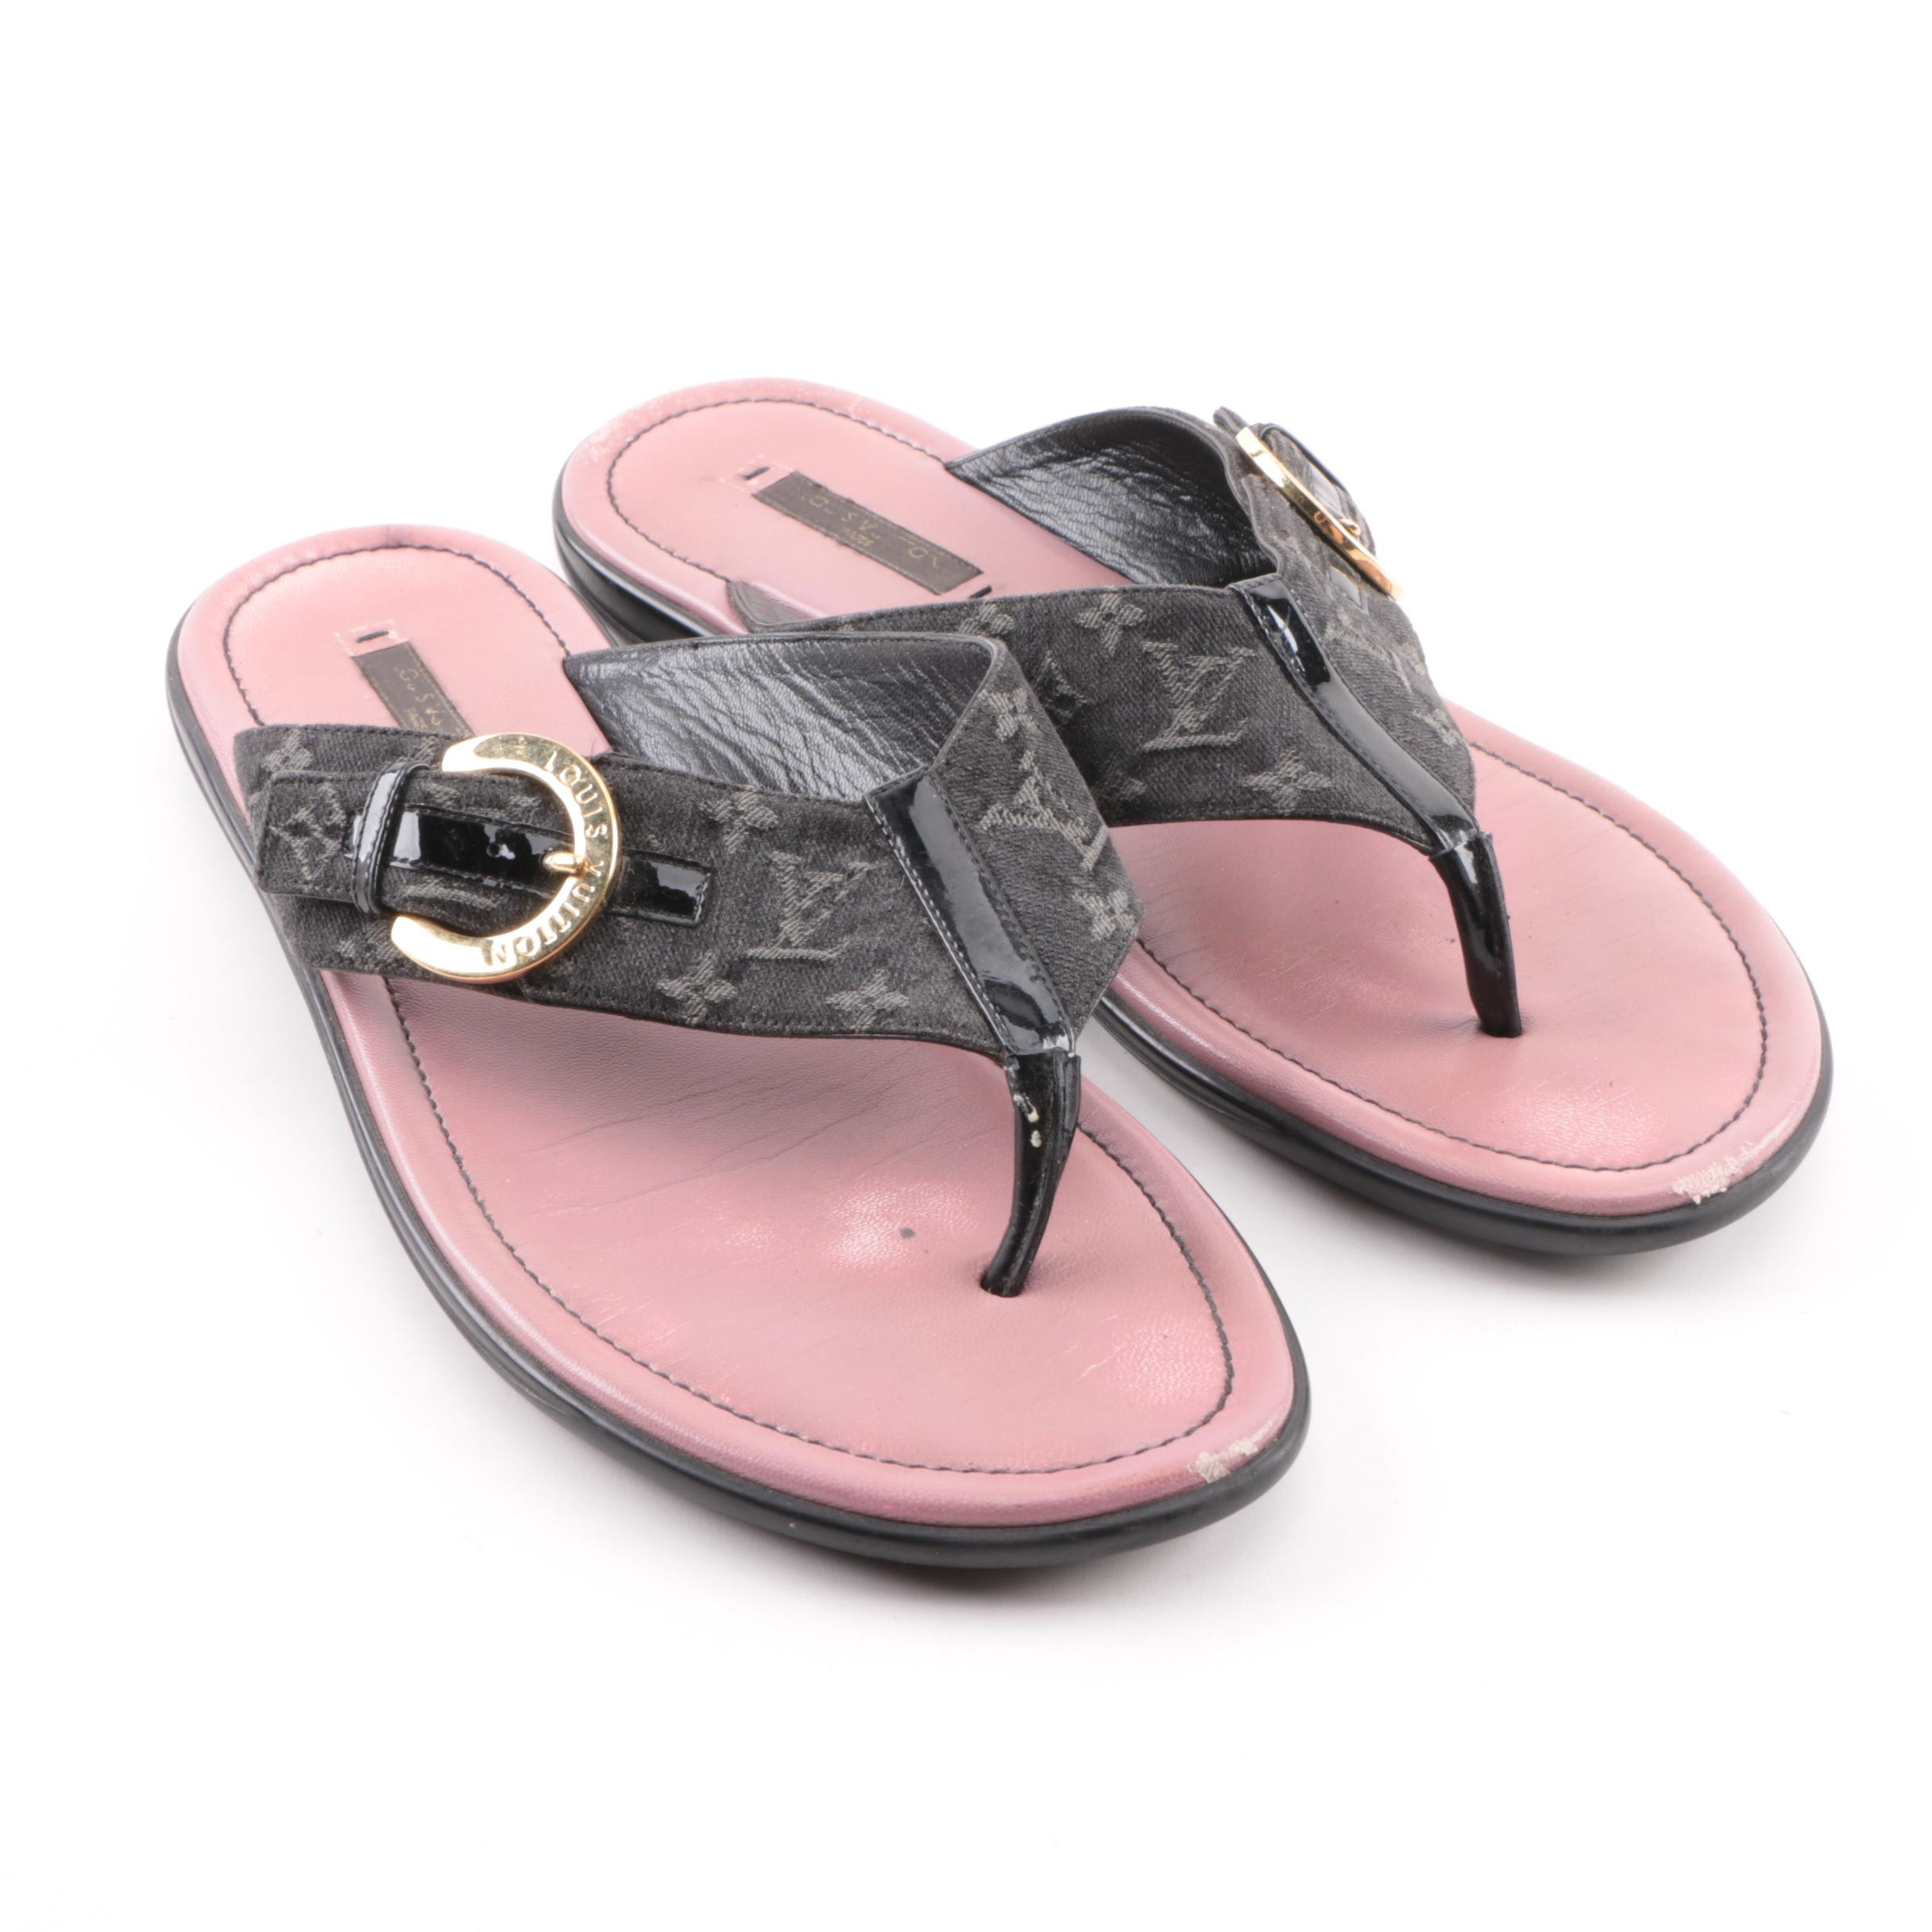 Women's Louis Vuitton Monogram Canvas and Black Patent Leather Thong Sandals